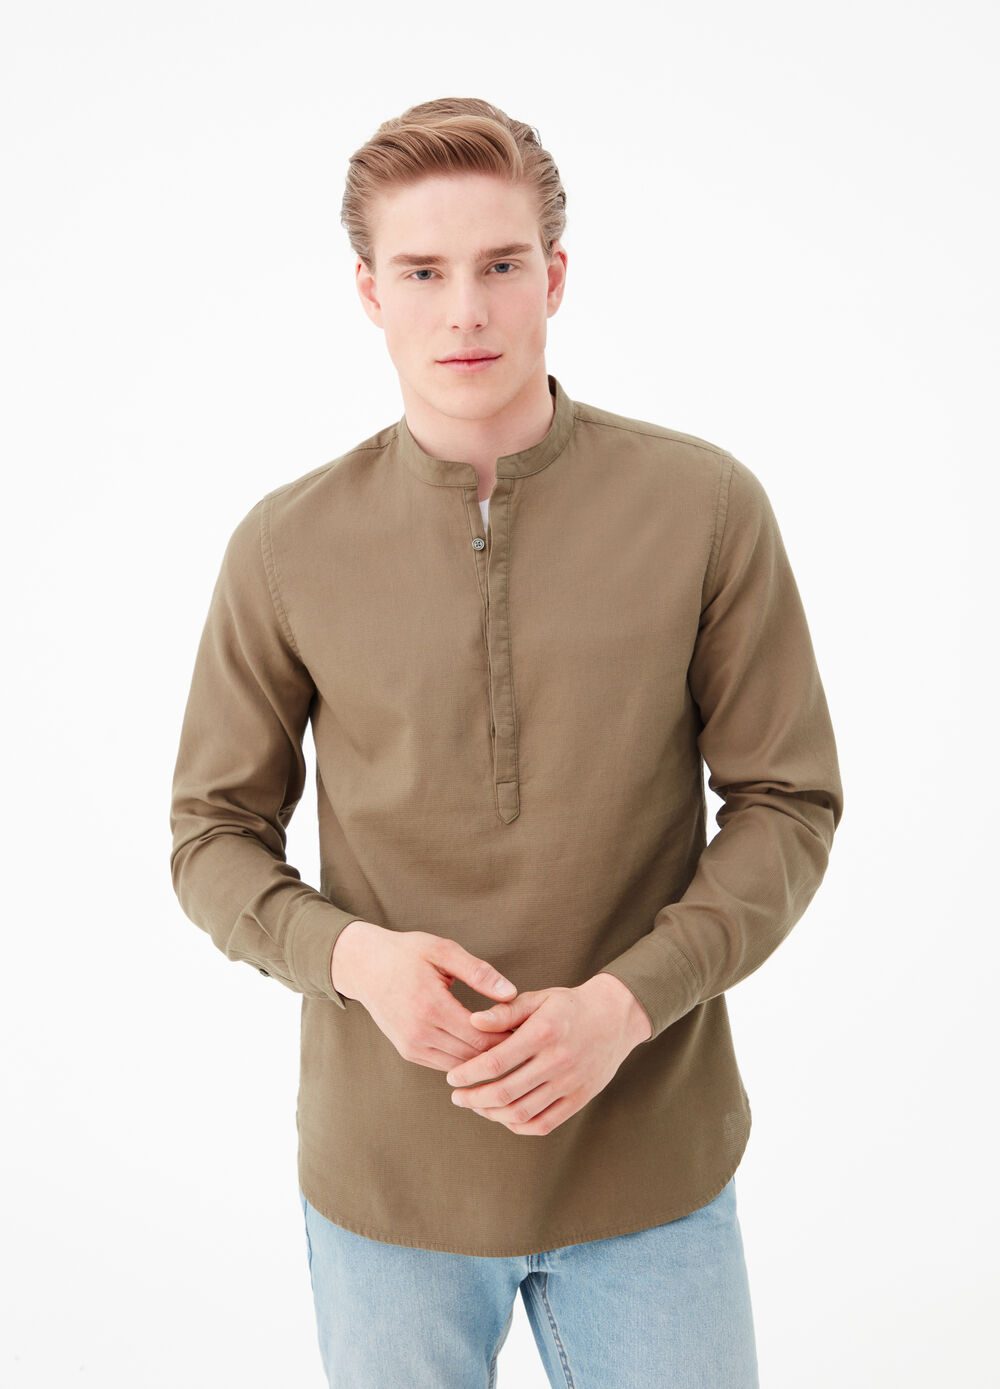 Solid colour textured fabric shirt.